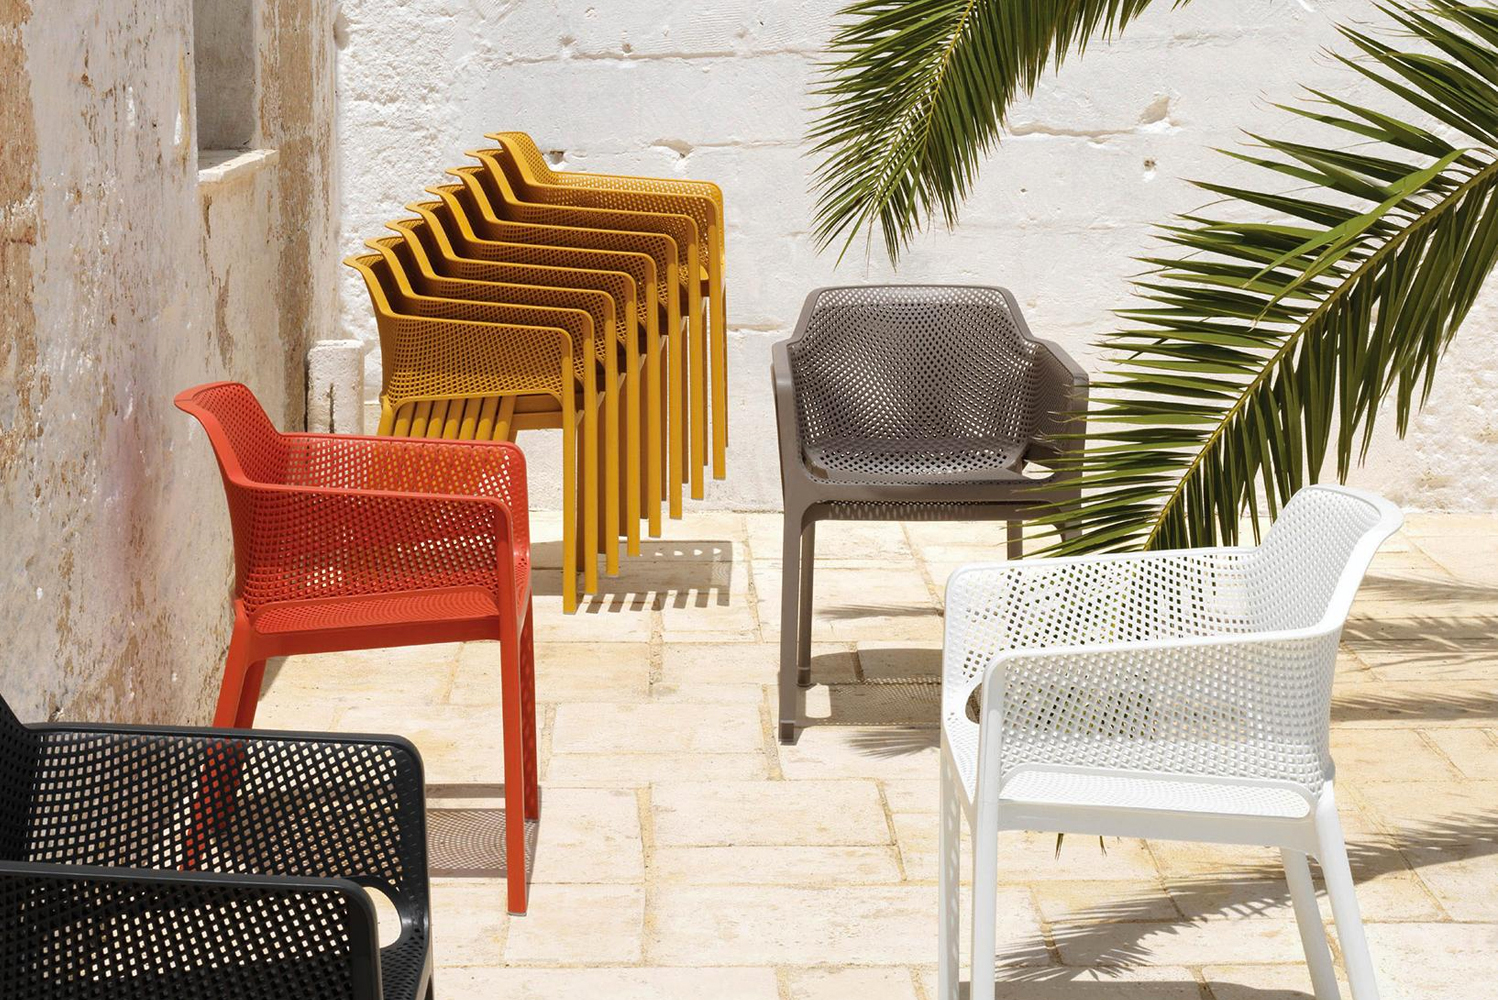 Introducing the Euro Form collection by Texacraft, a contract furniture brand known for its outdoor and casual offerings.